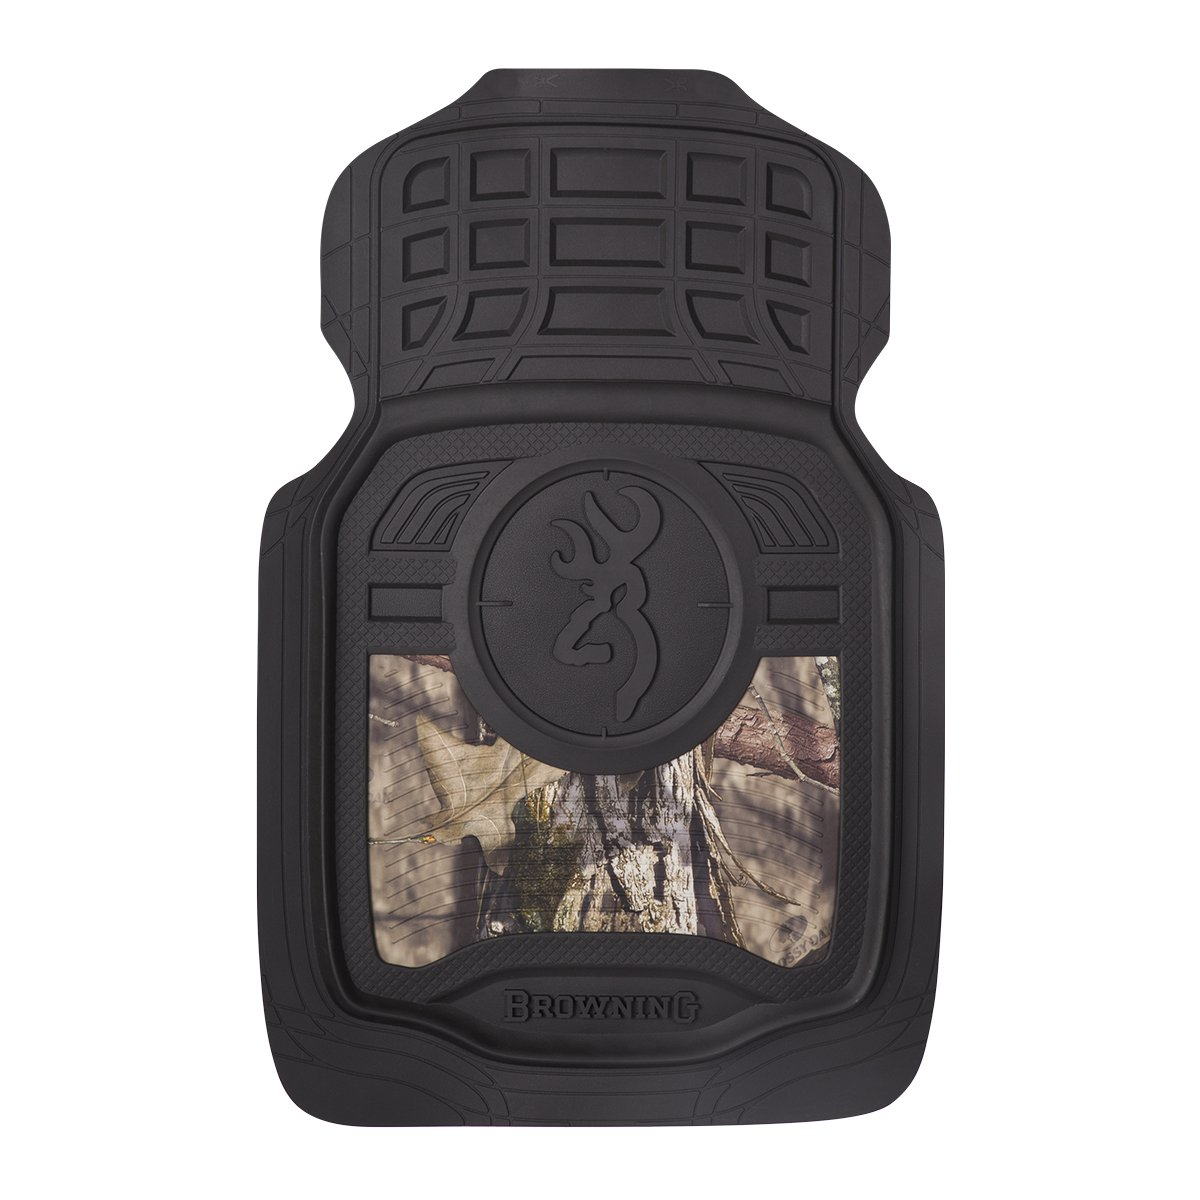 fit camouflage black x photo suv company for front pink compa to truck duty arms browning floor mat of buckmark camo cars mats car trim print seat heavy superior